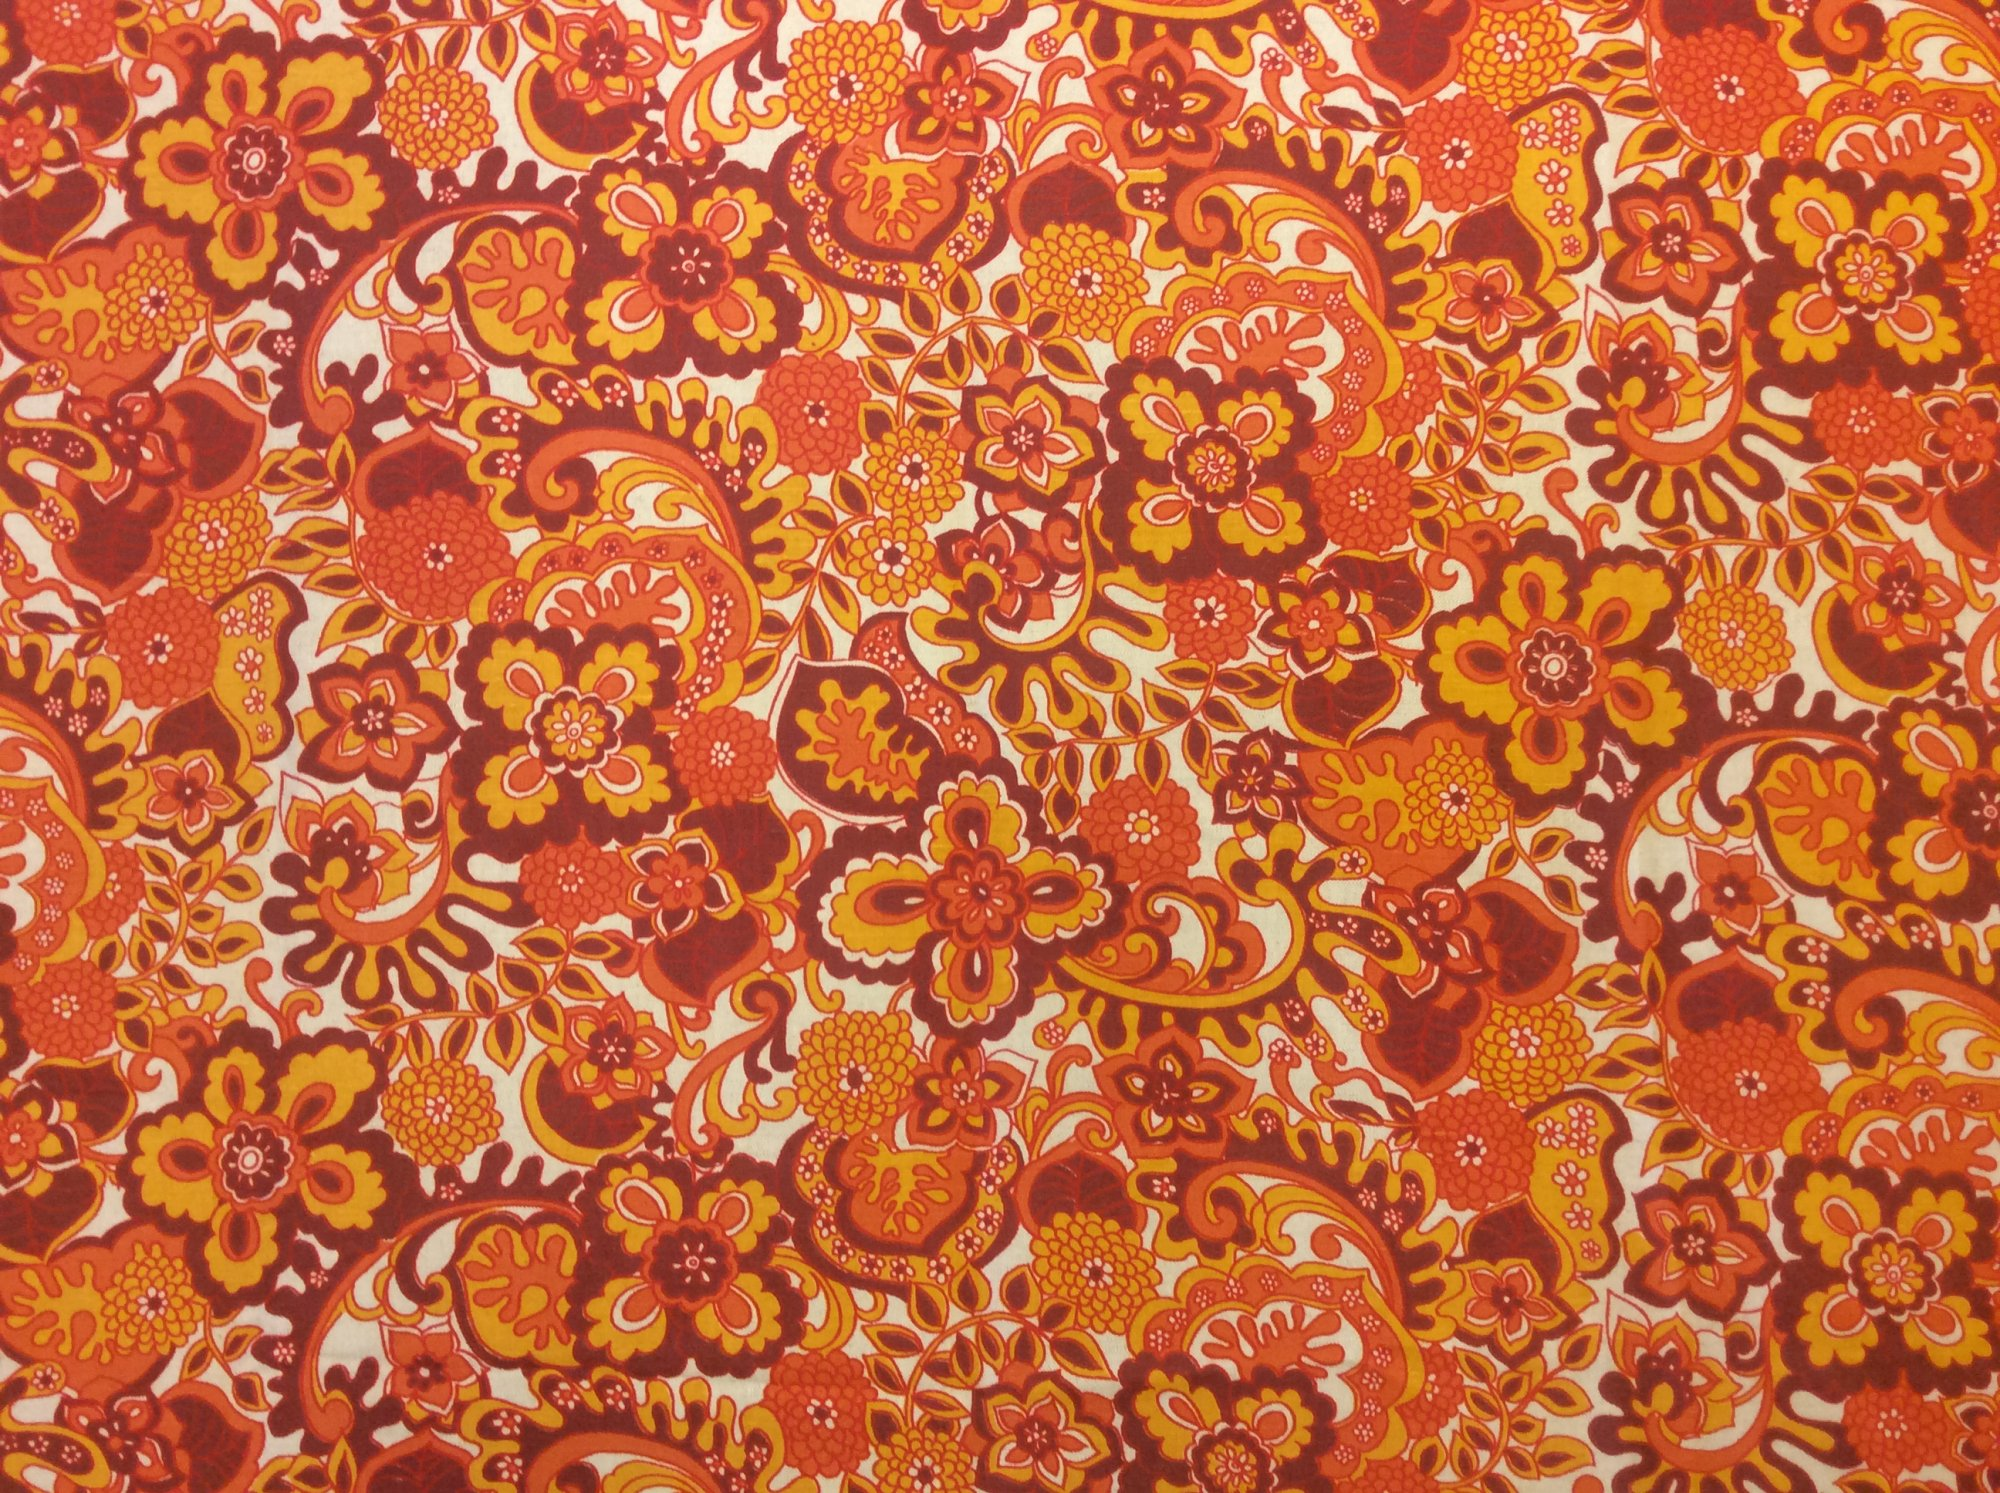 RARE! True Vintage Retro Groovy Floral Print Kitschy Screen Printed Cotton Home Decor Fabric TRV004